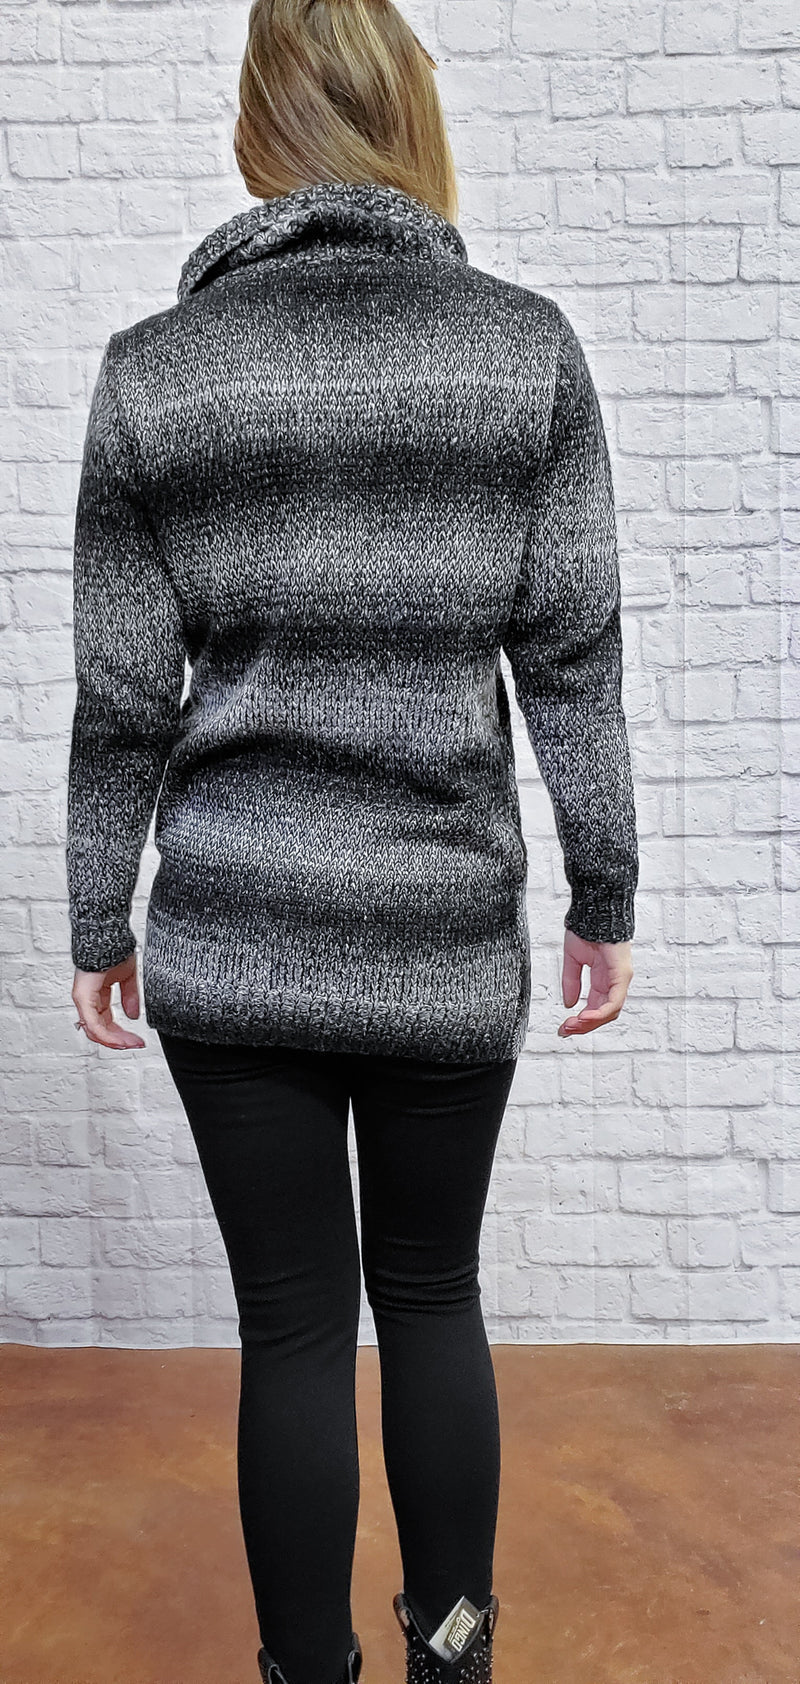 Woven Knit Cowl Sweater